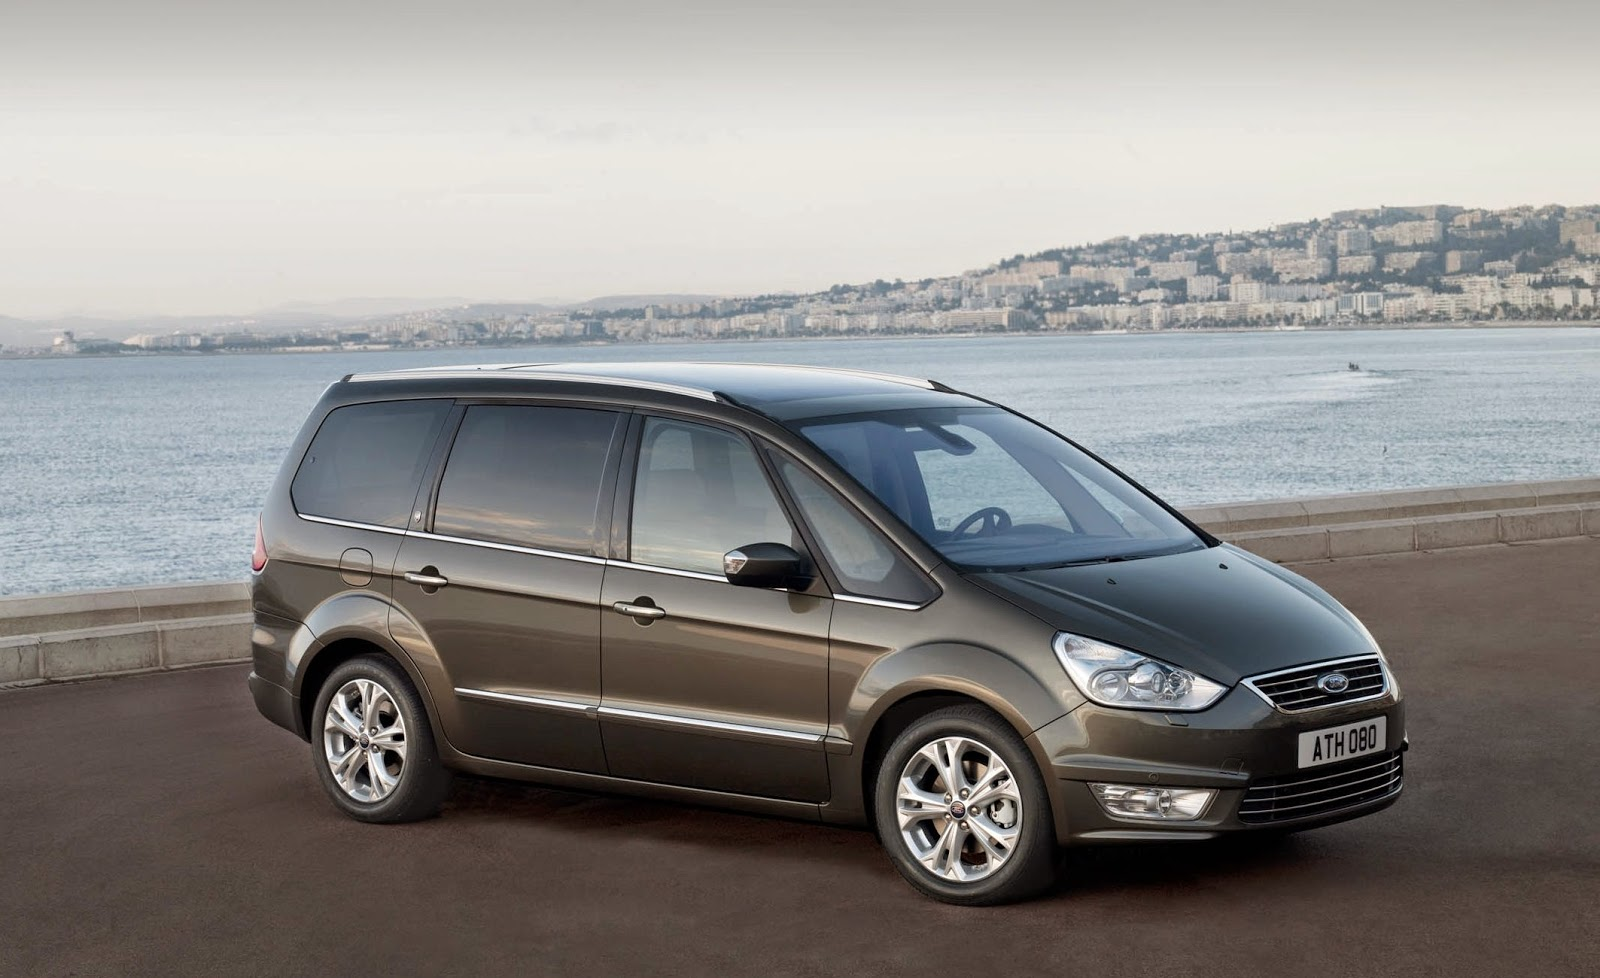 ford galaxy - editorial use - parked up by the sea - car review site favoouite